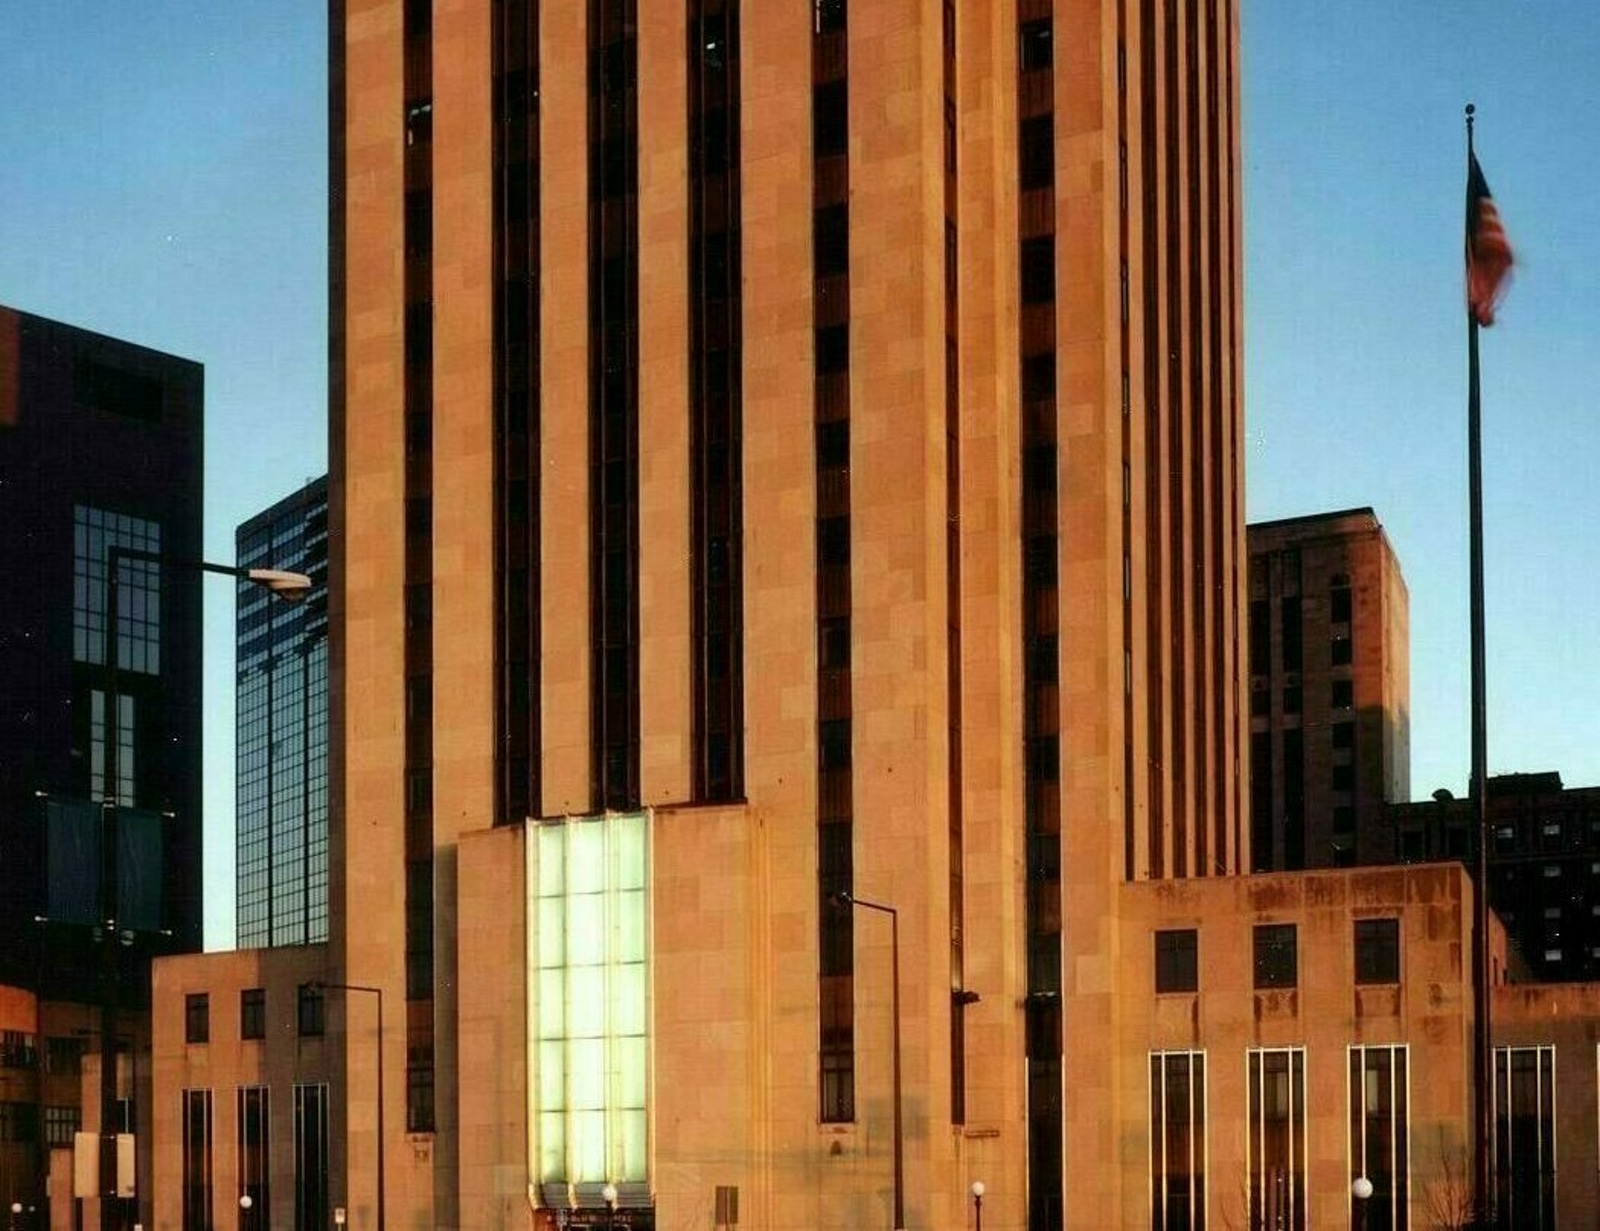 1991 Ramsey County Courthouse